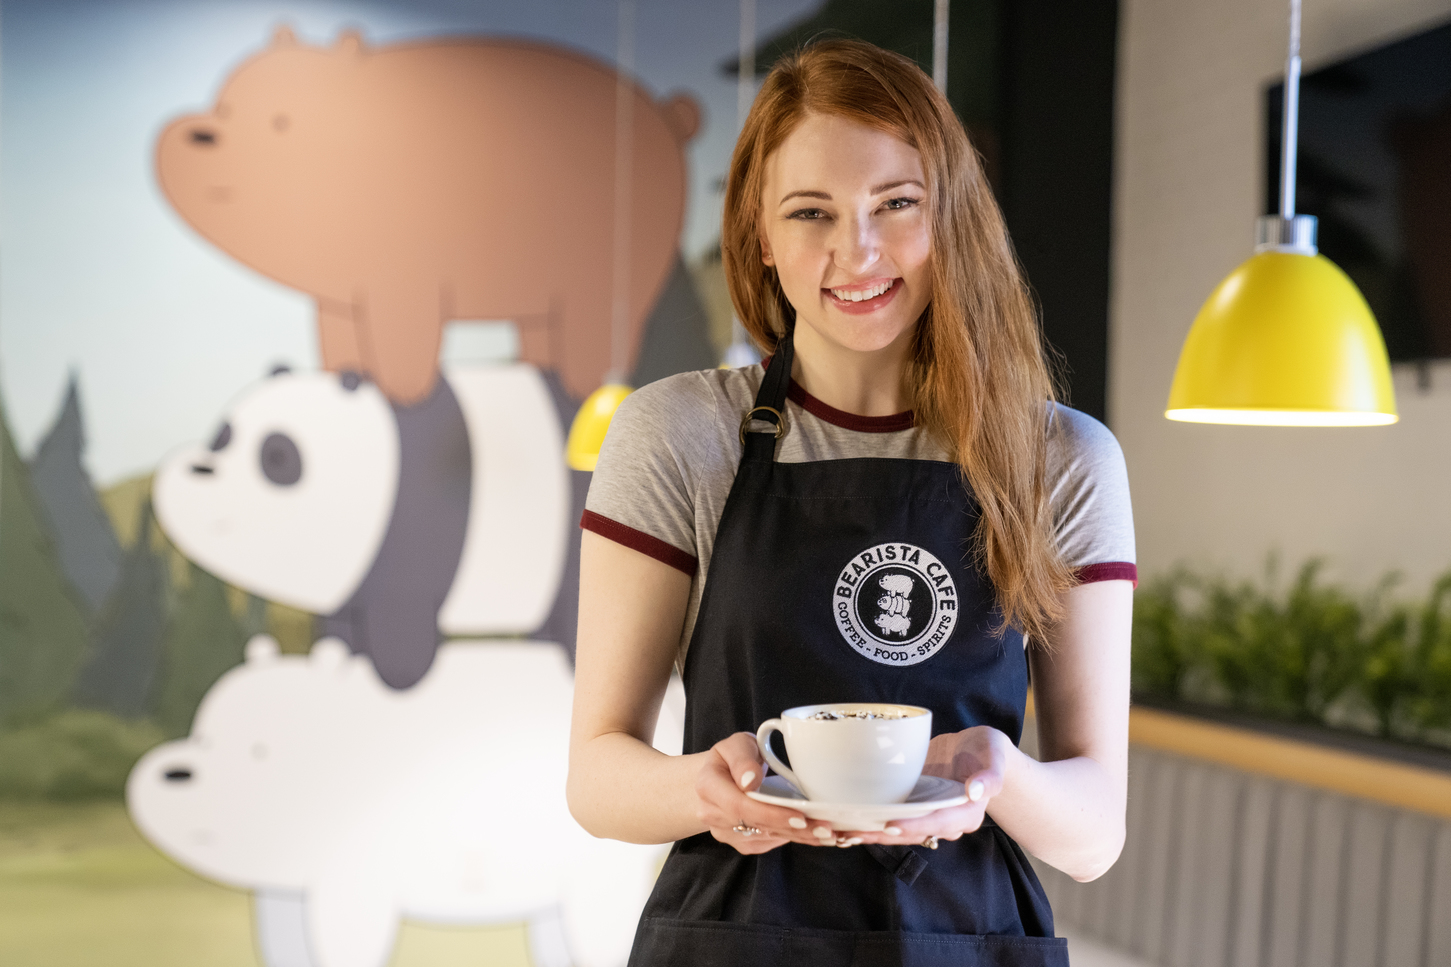 Smiling female barista holds a coffee cup while standing in front of a mural of animated bears